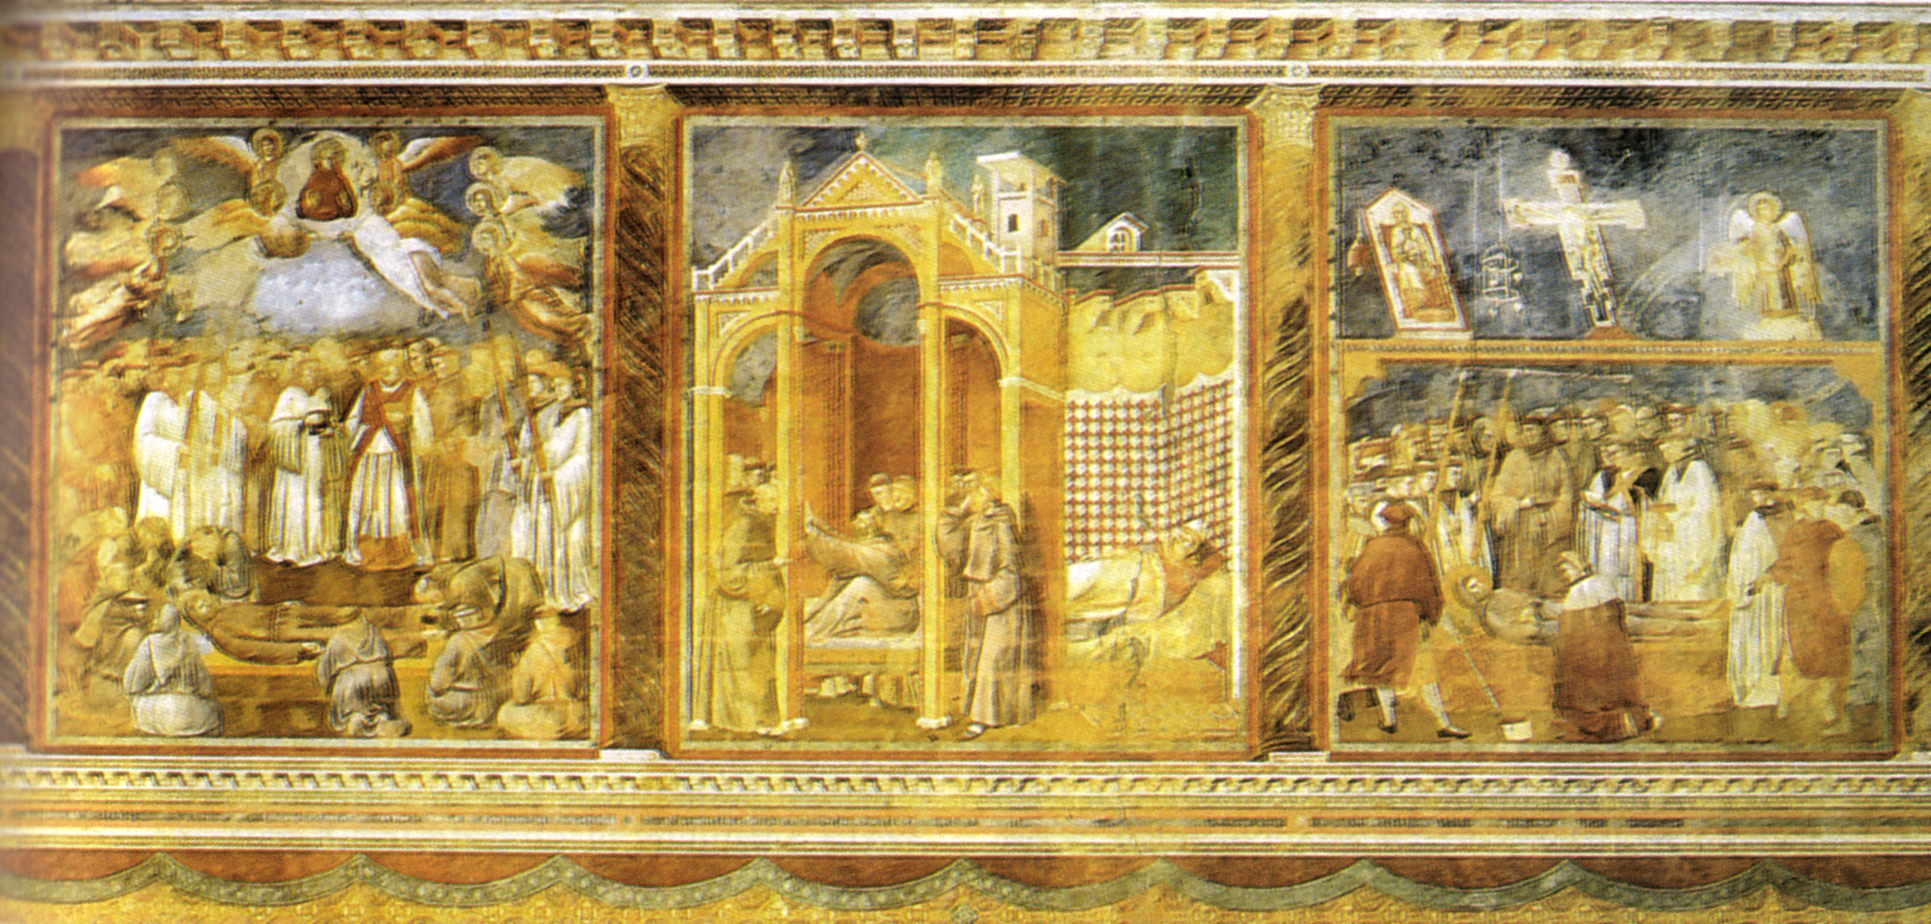 Interno della Basilica superiore di San Francesco D'Assisi - Giotto 2